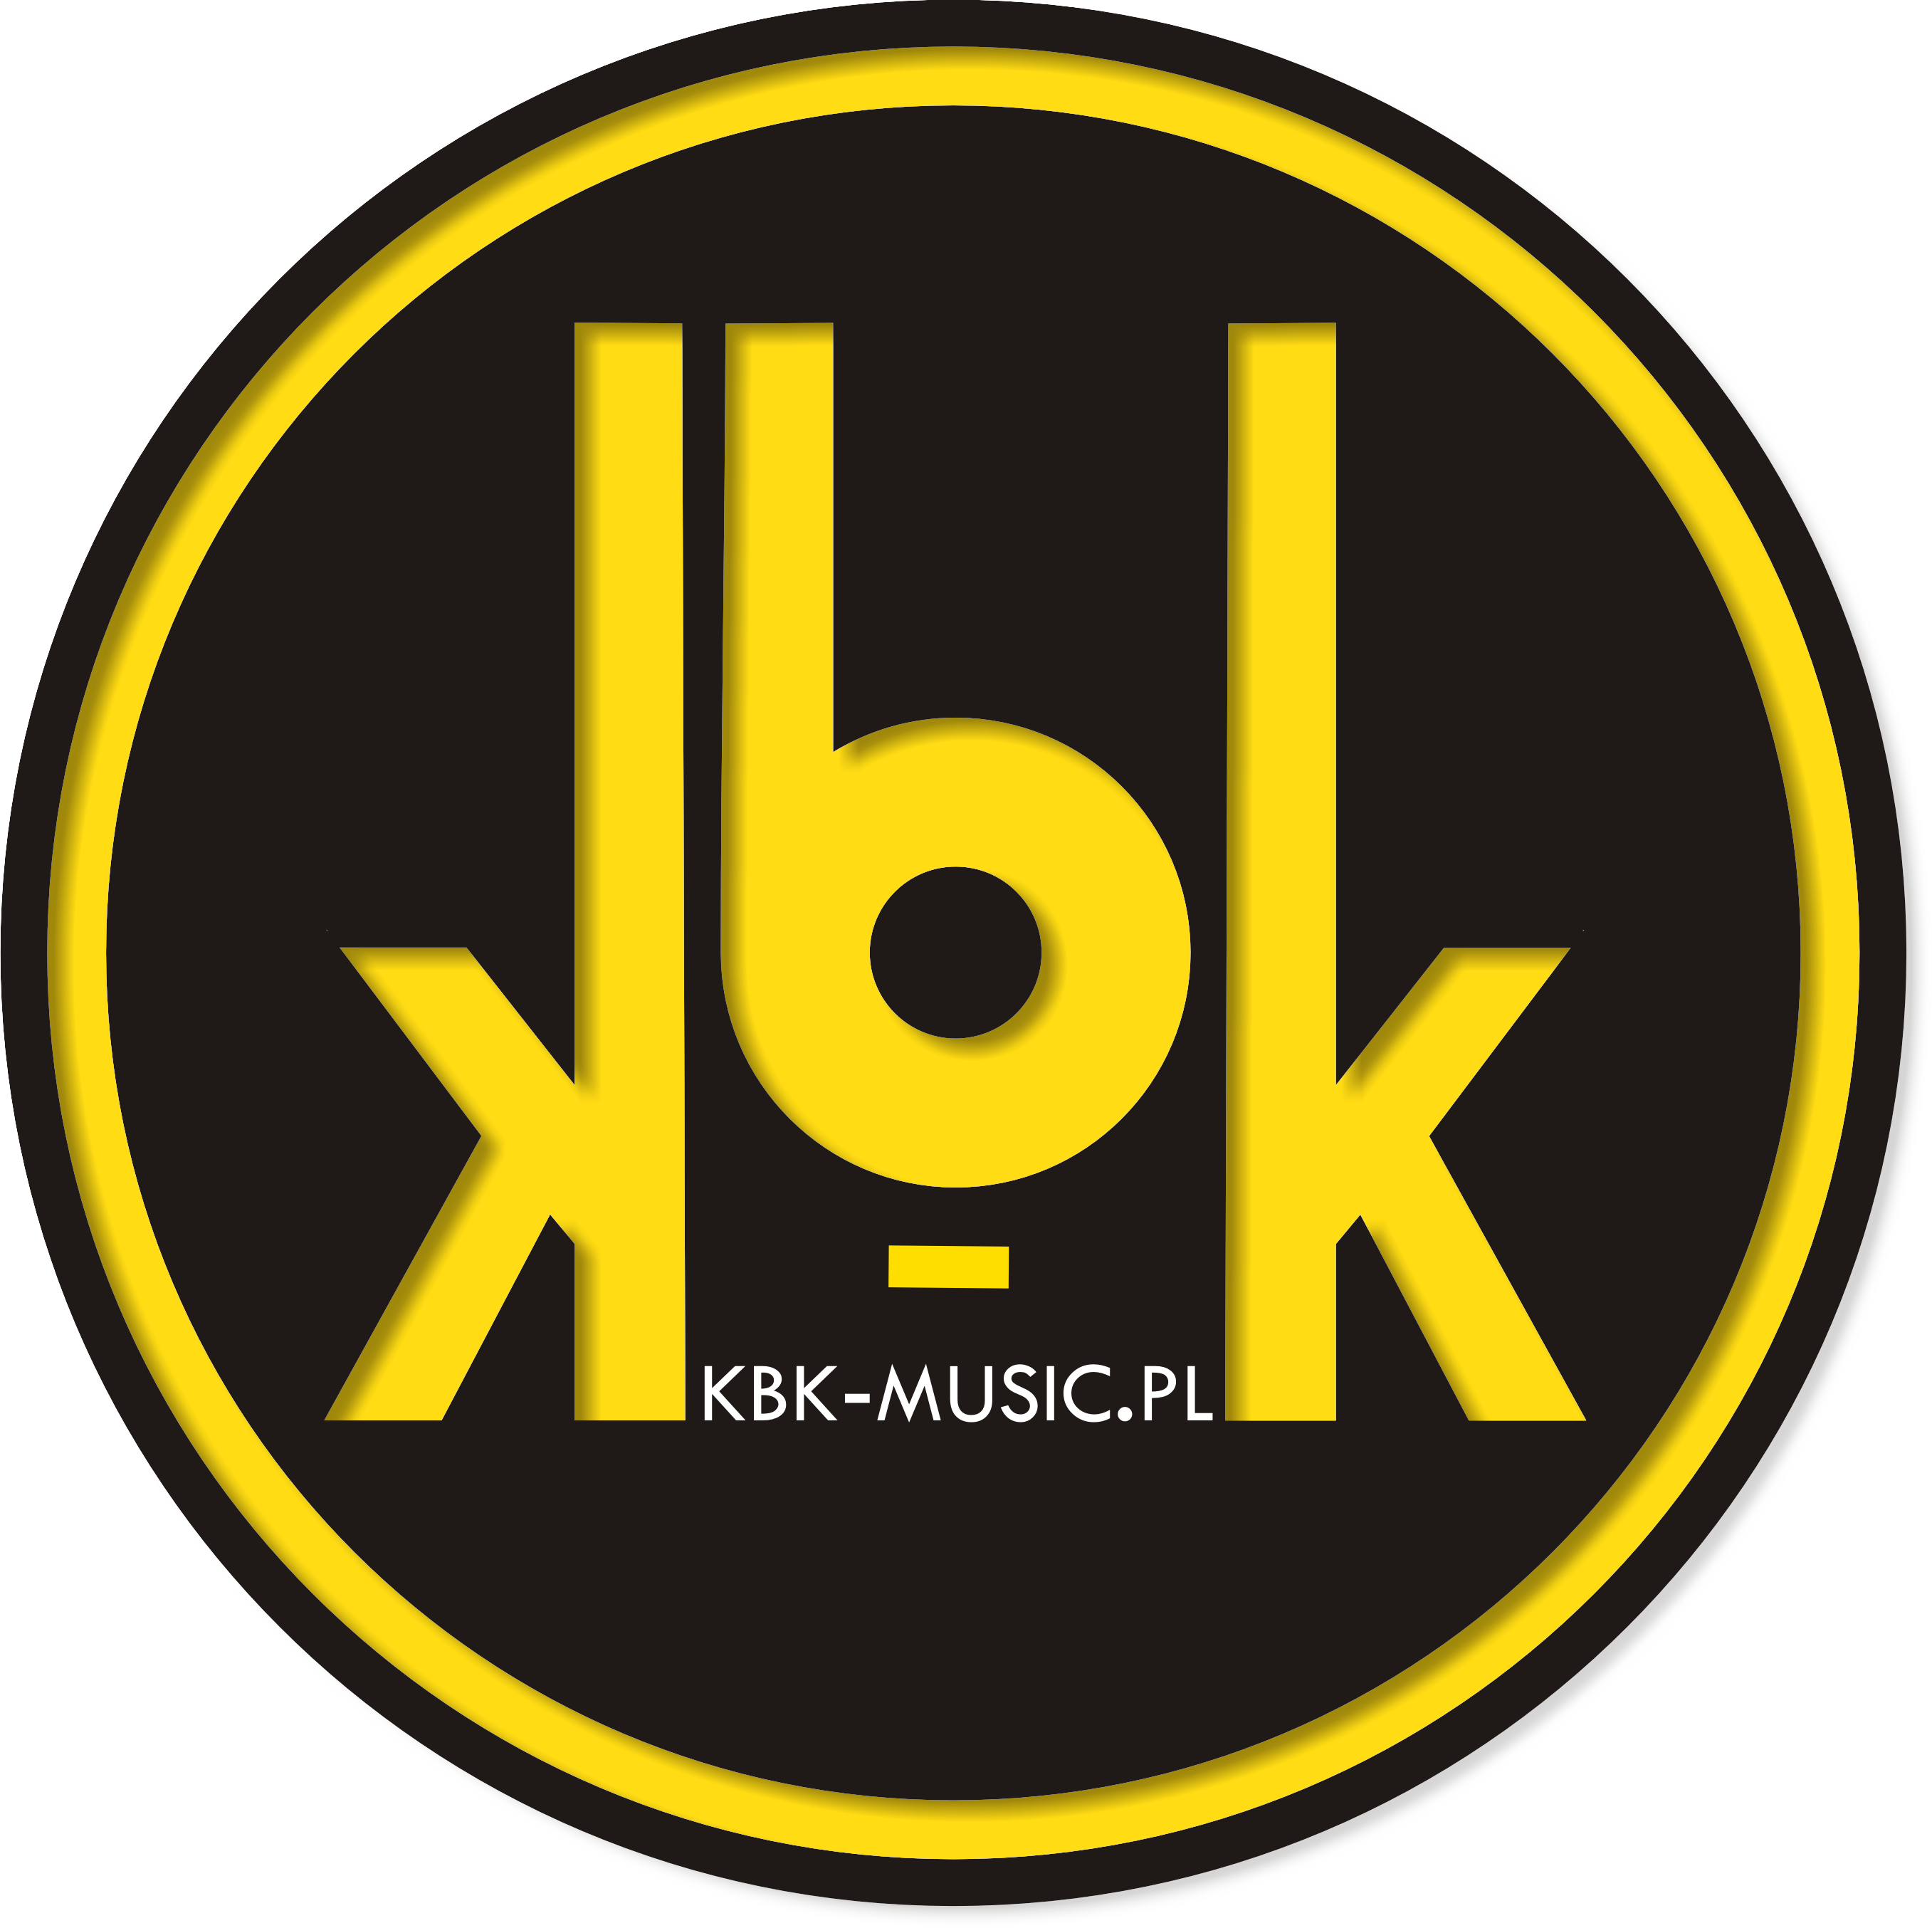 KBK Music Producer of Trance music